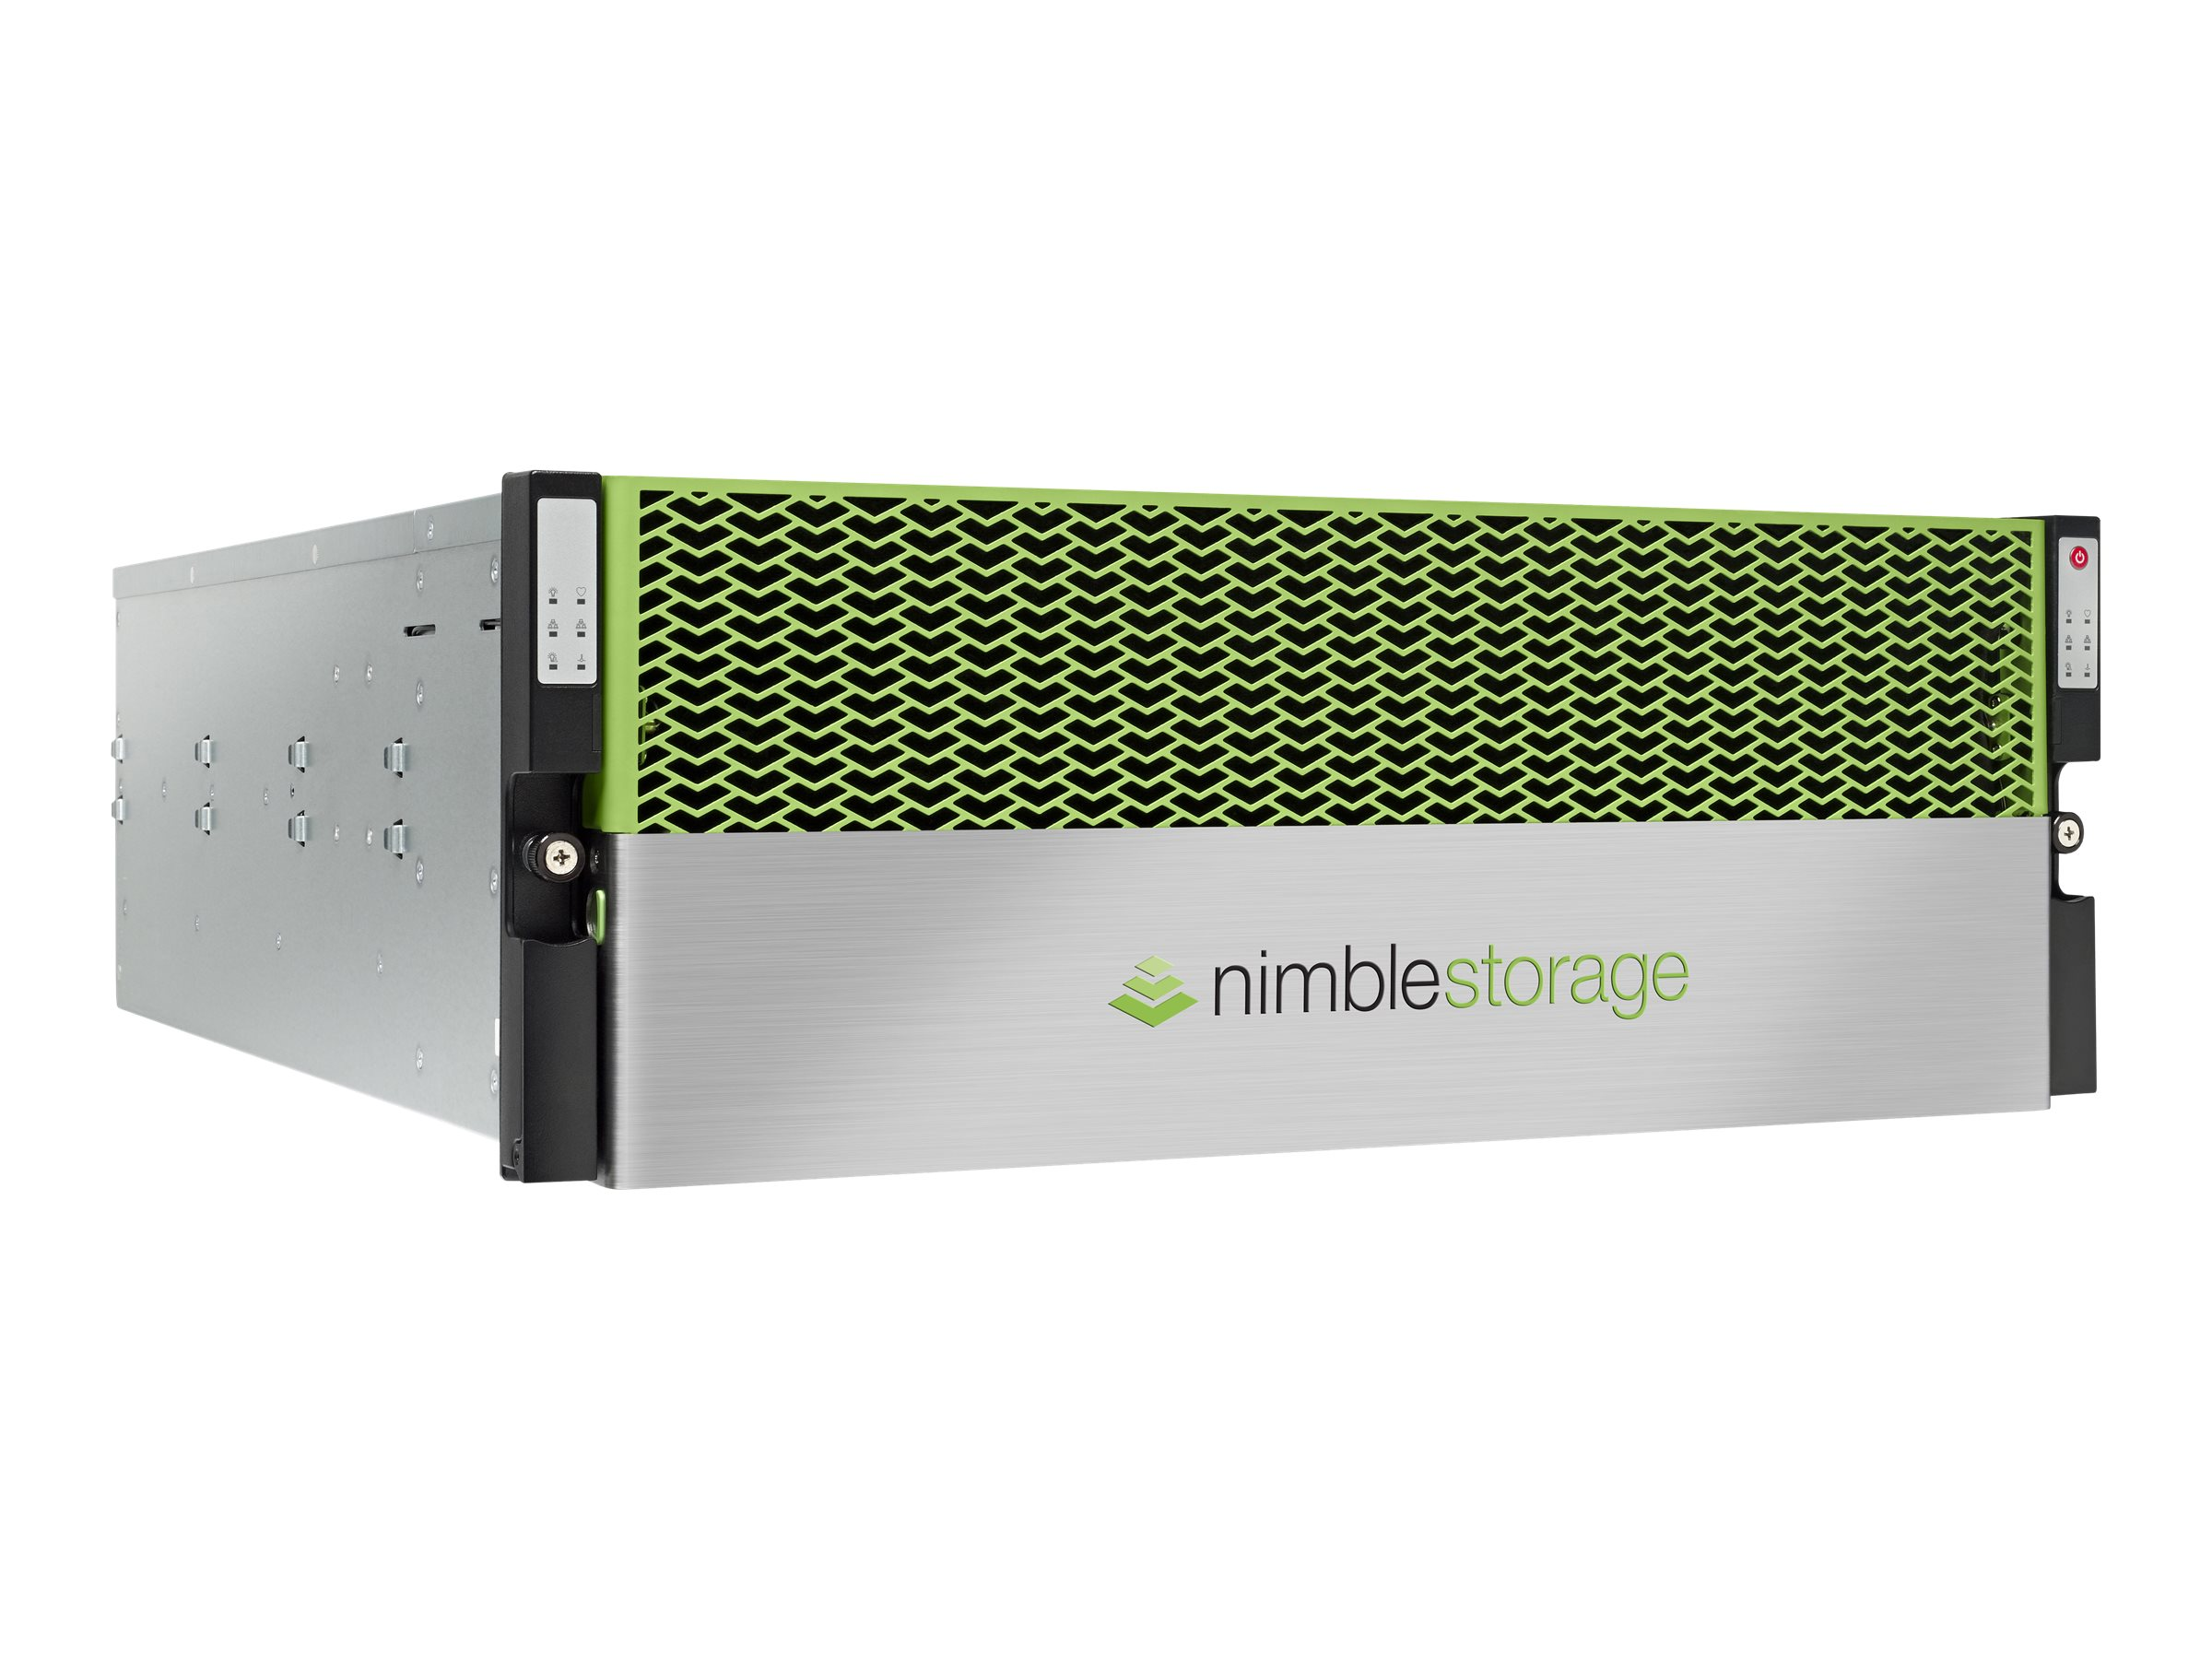 HPE Nimble Storage Cache Bundle - solid state drive - 80 GB - Field Upgrade (pack of 2)